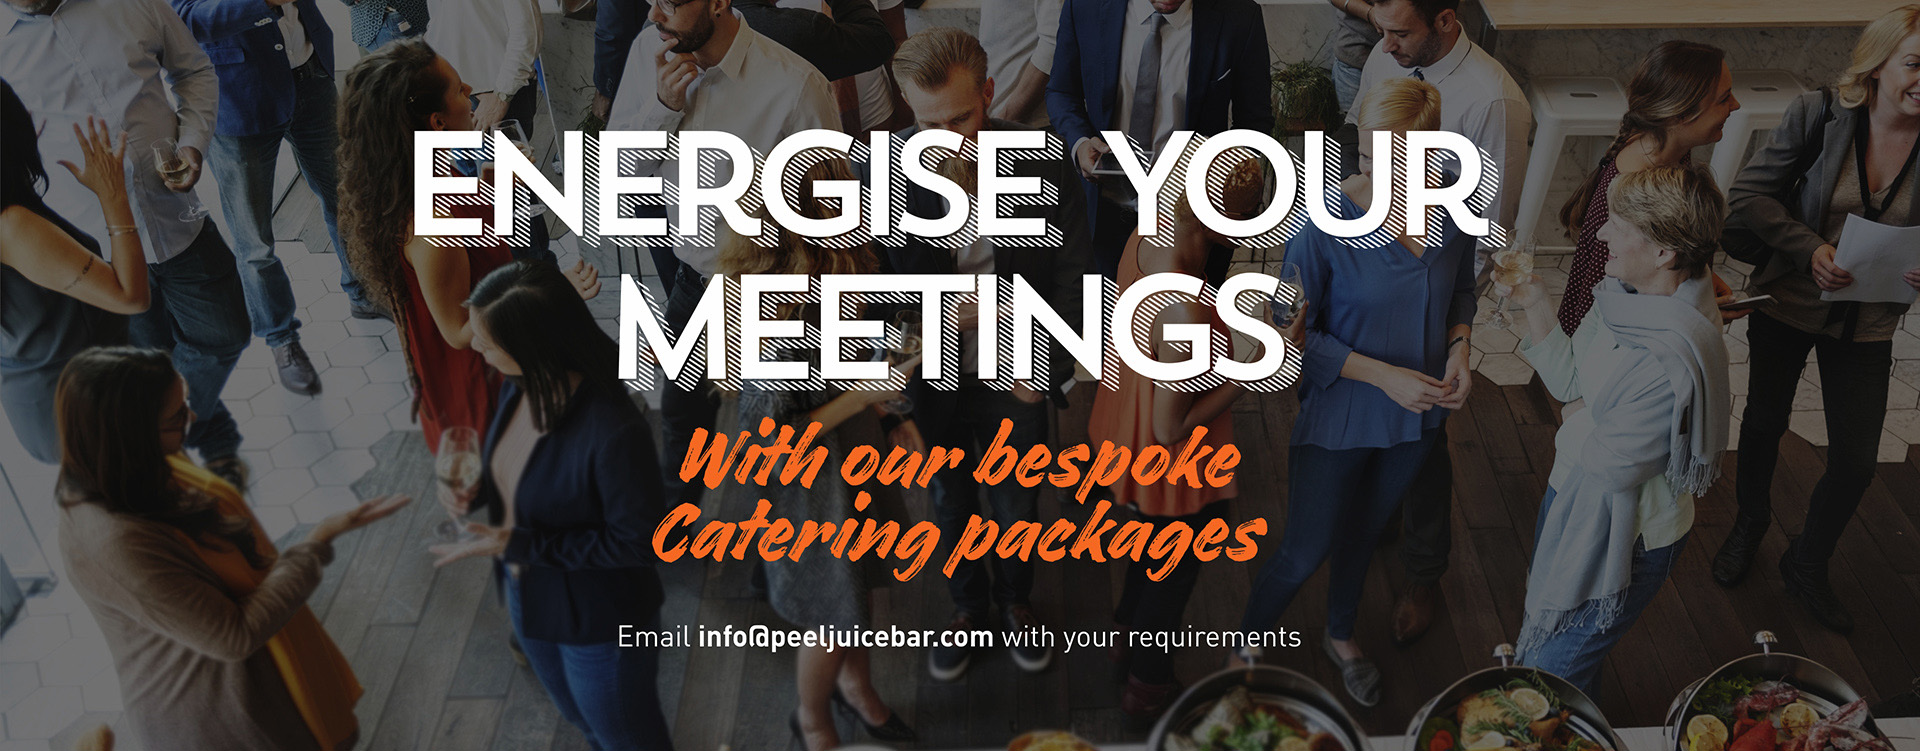 Energise your meetings